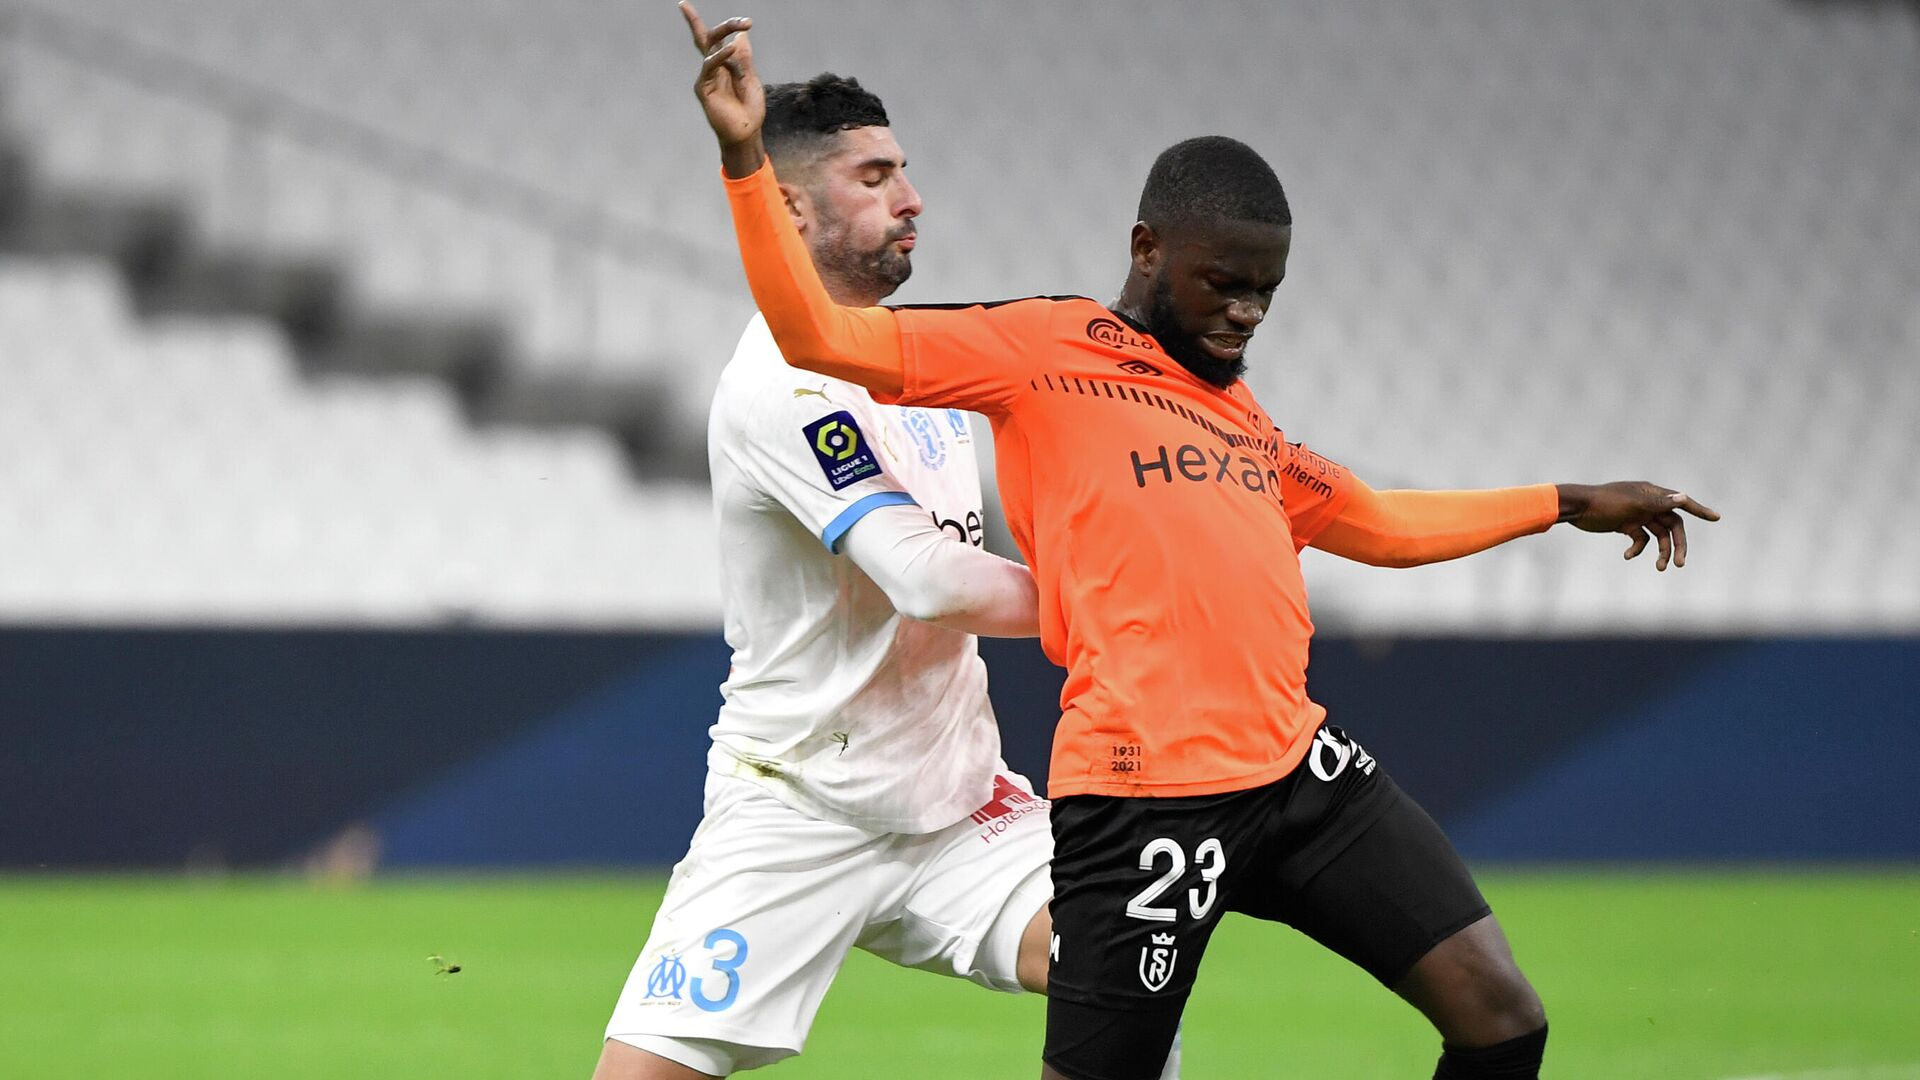 Marseille's Spanish defender Alvaro Gonzalez (L) fights for the ball with Reims' Bissau-Guinean midfielder Moreto Cassama during the French L1 football match between Olympique de Marseille (OM) and Reims at the Velodrome Stadium in Marseille, southeastern France, on December 19, 2020. (Photo by NICOLAS TUCAT / AFP) - РИА Новости, 1920, 19.12.2020